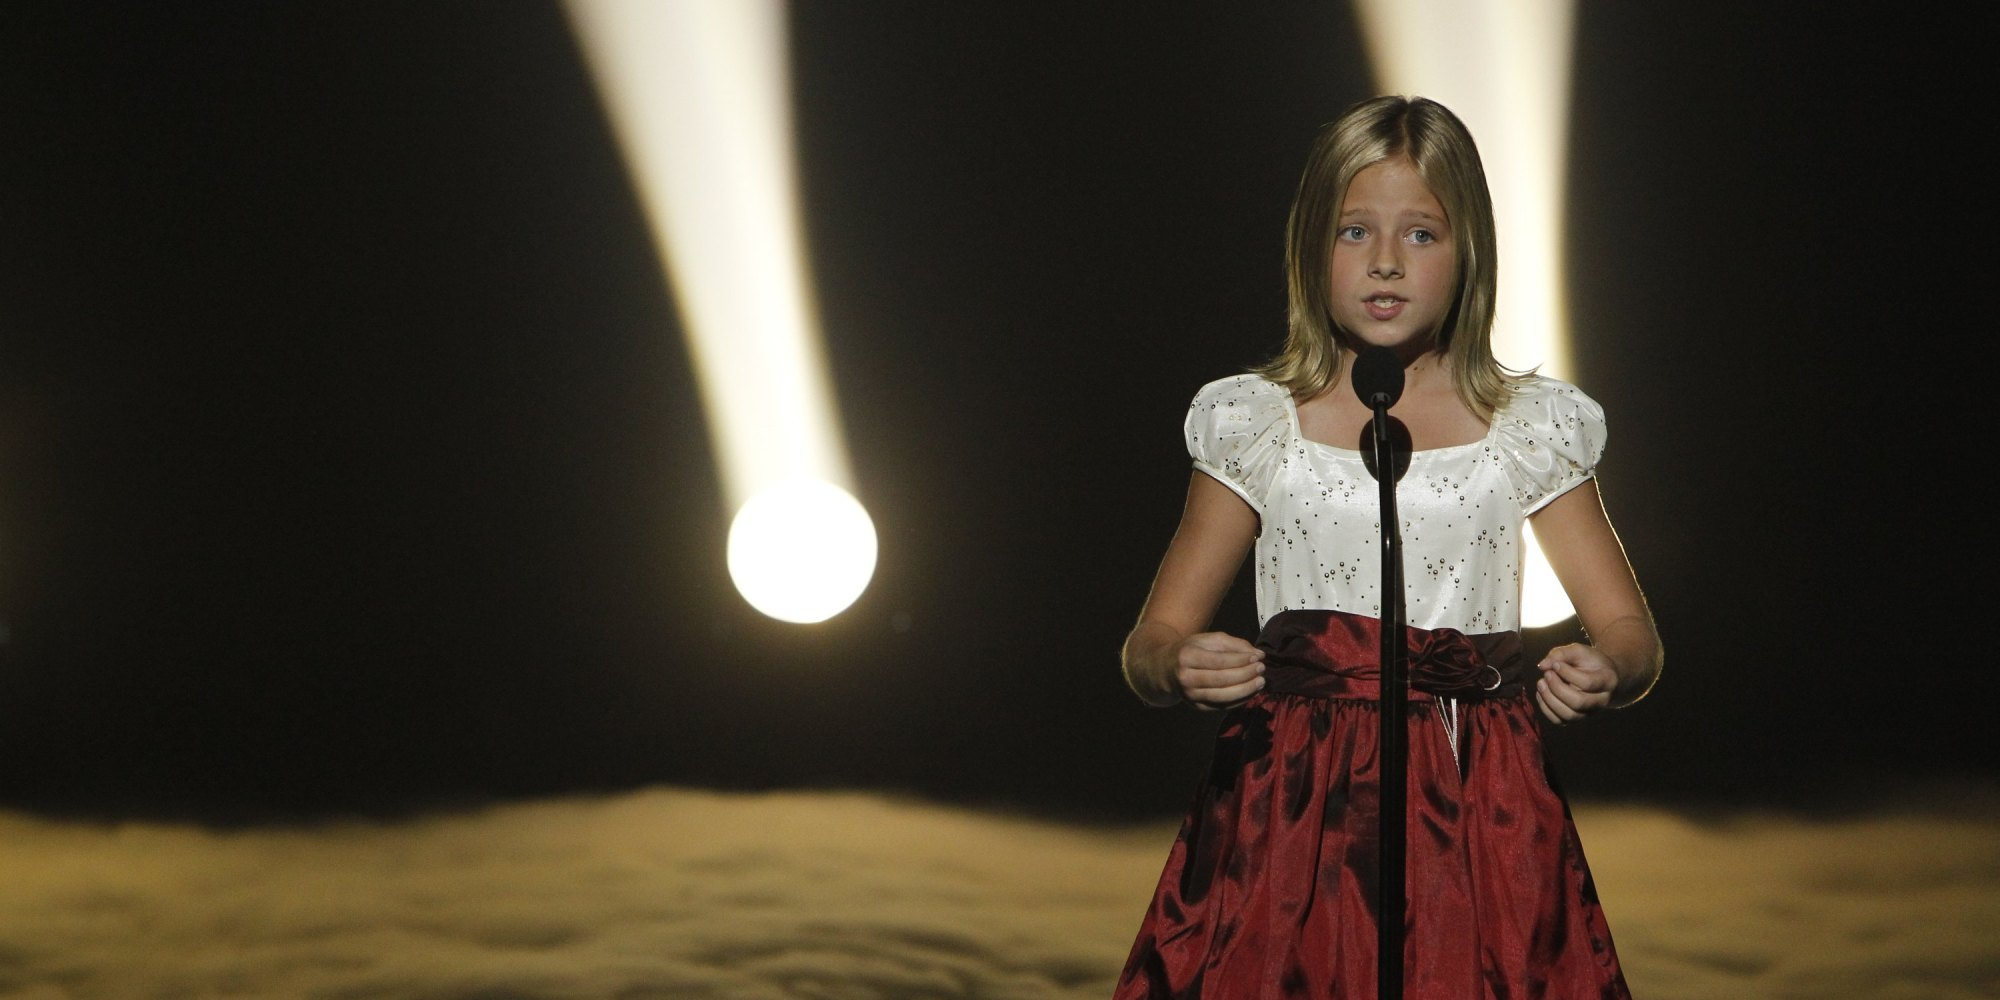 Americas got talent 2017 9 year old opera singer - Jackie Evancho Once The World S Youngest Opera Singer Isn T A Little Kid Anymore Video Huffpost